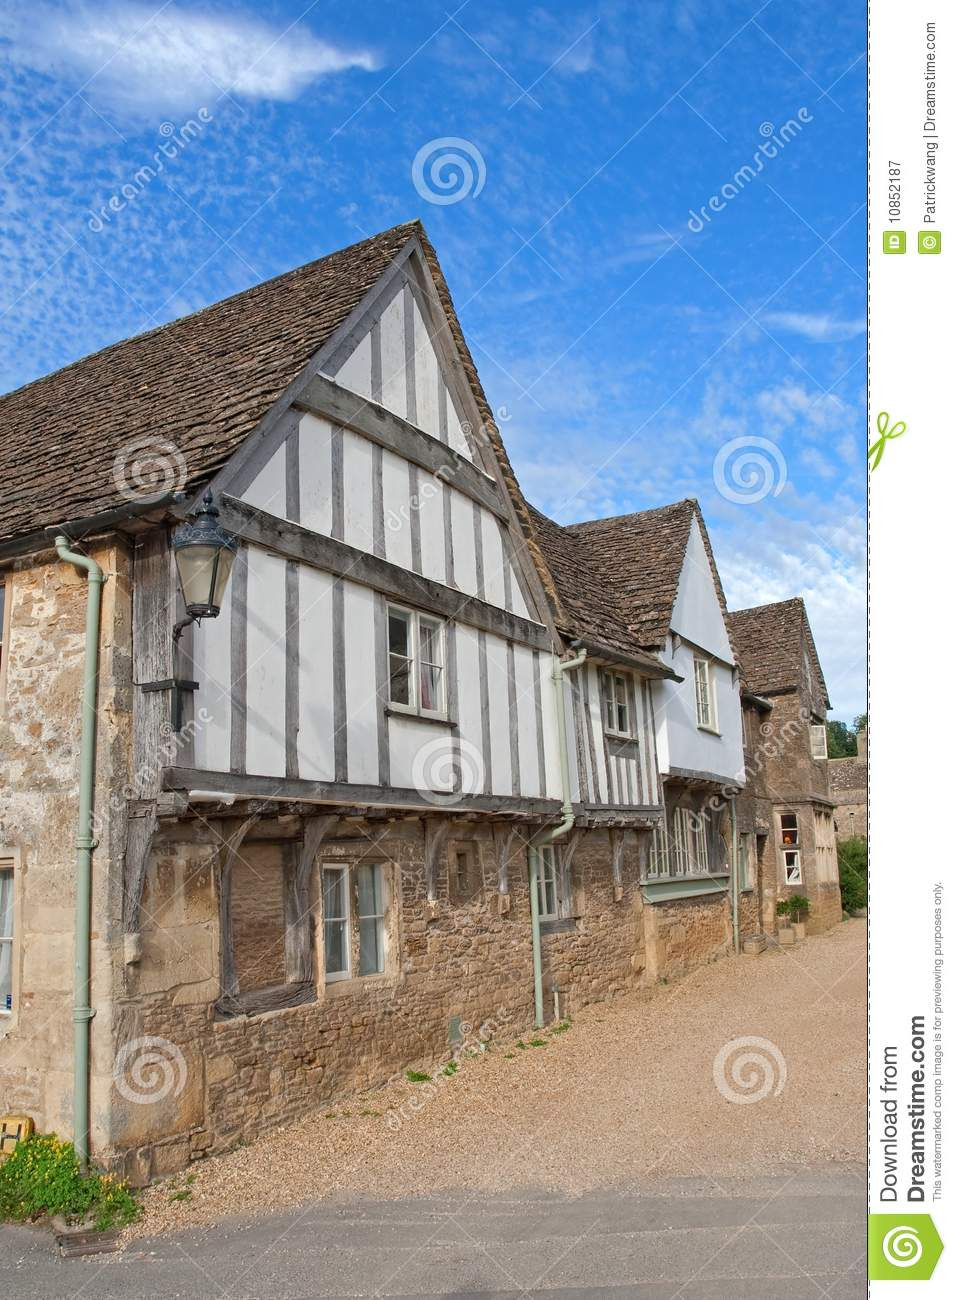 Old english house royalty free stock photography image for Classic english house